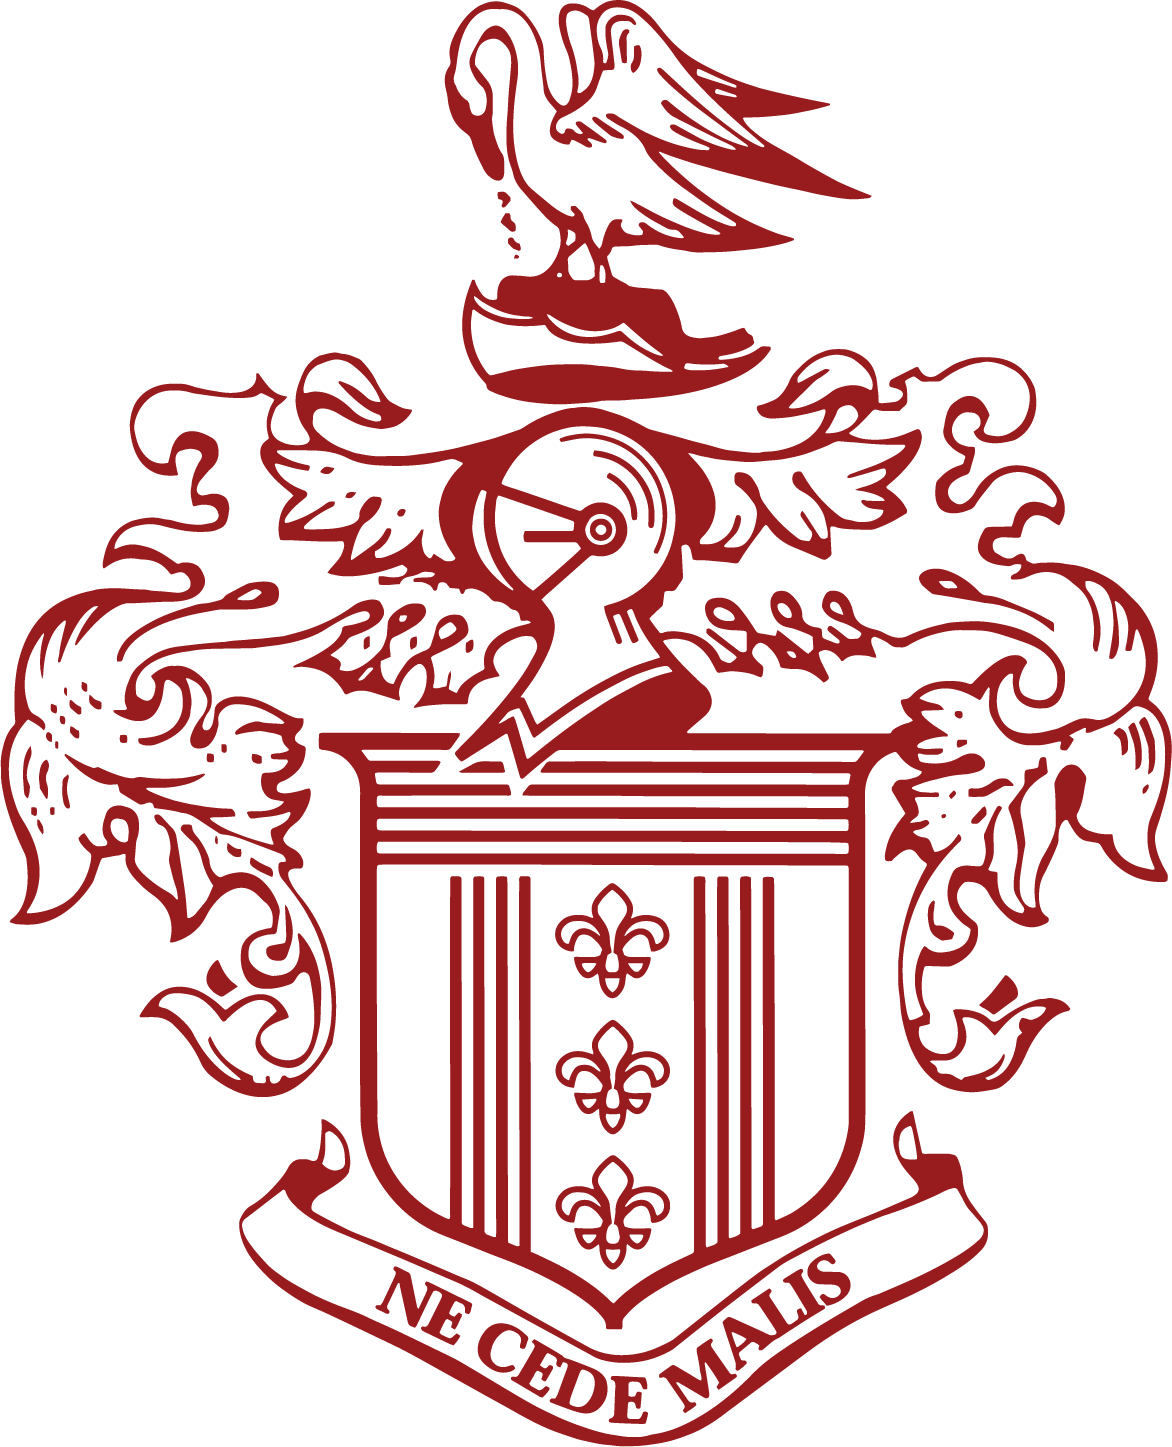 Loomis Chaffee Coat of Arms